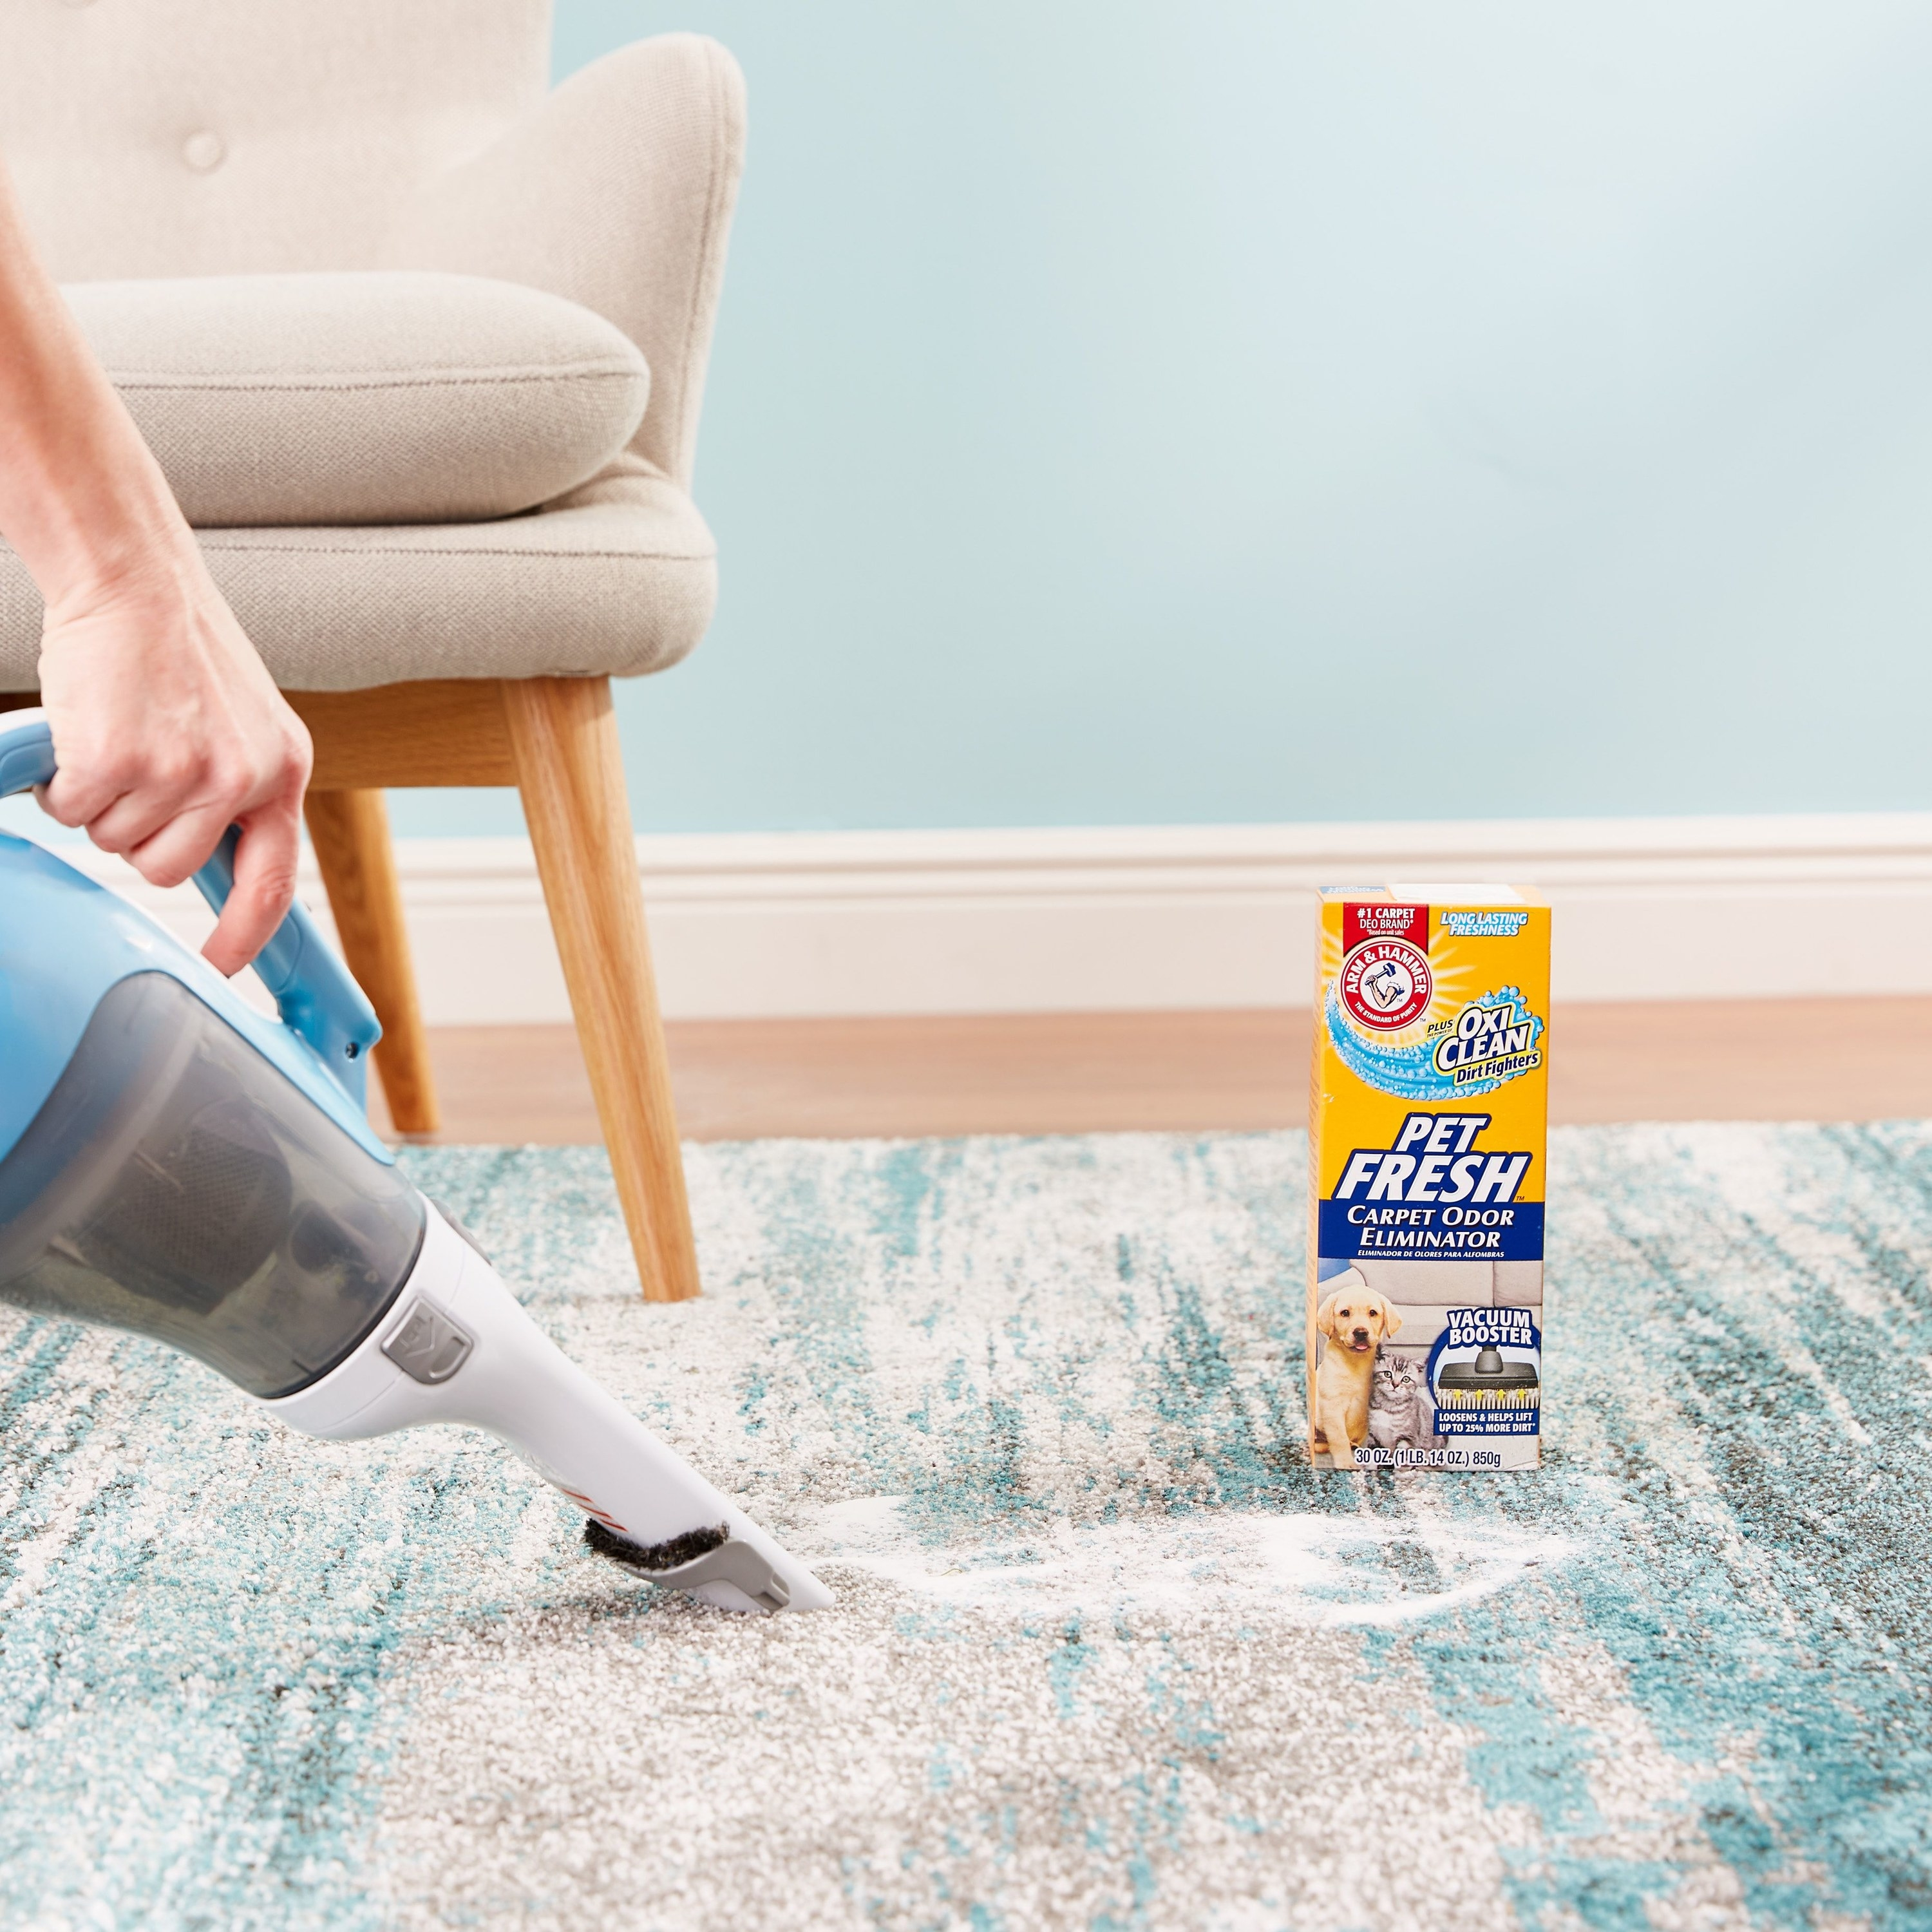 Model vacuuming rug with the cleaning solution